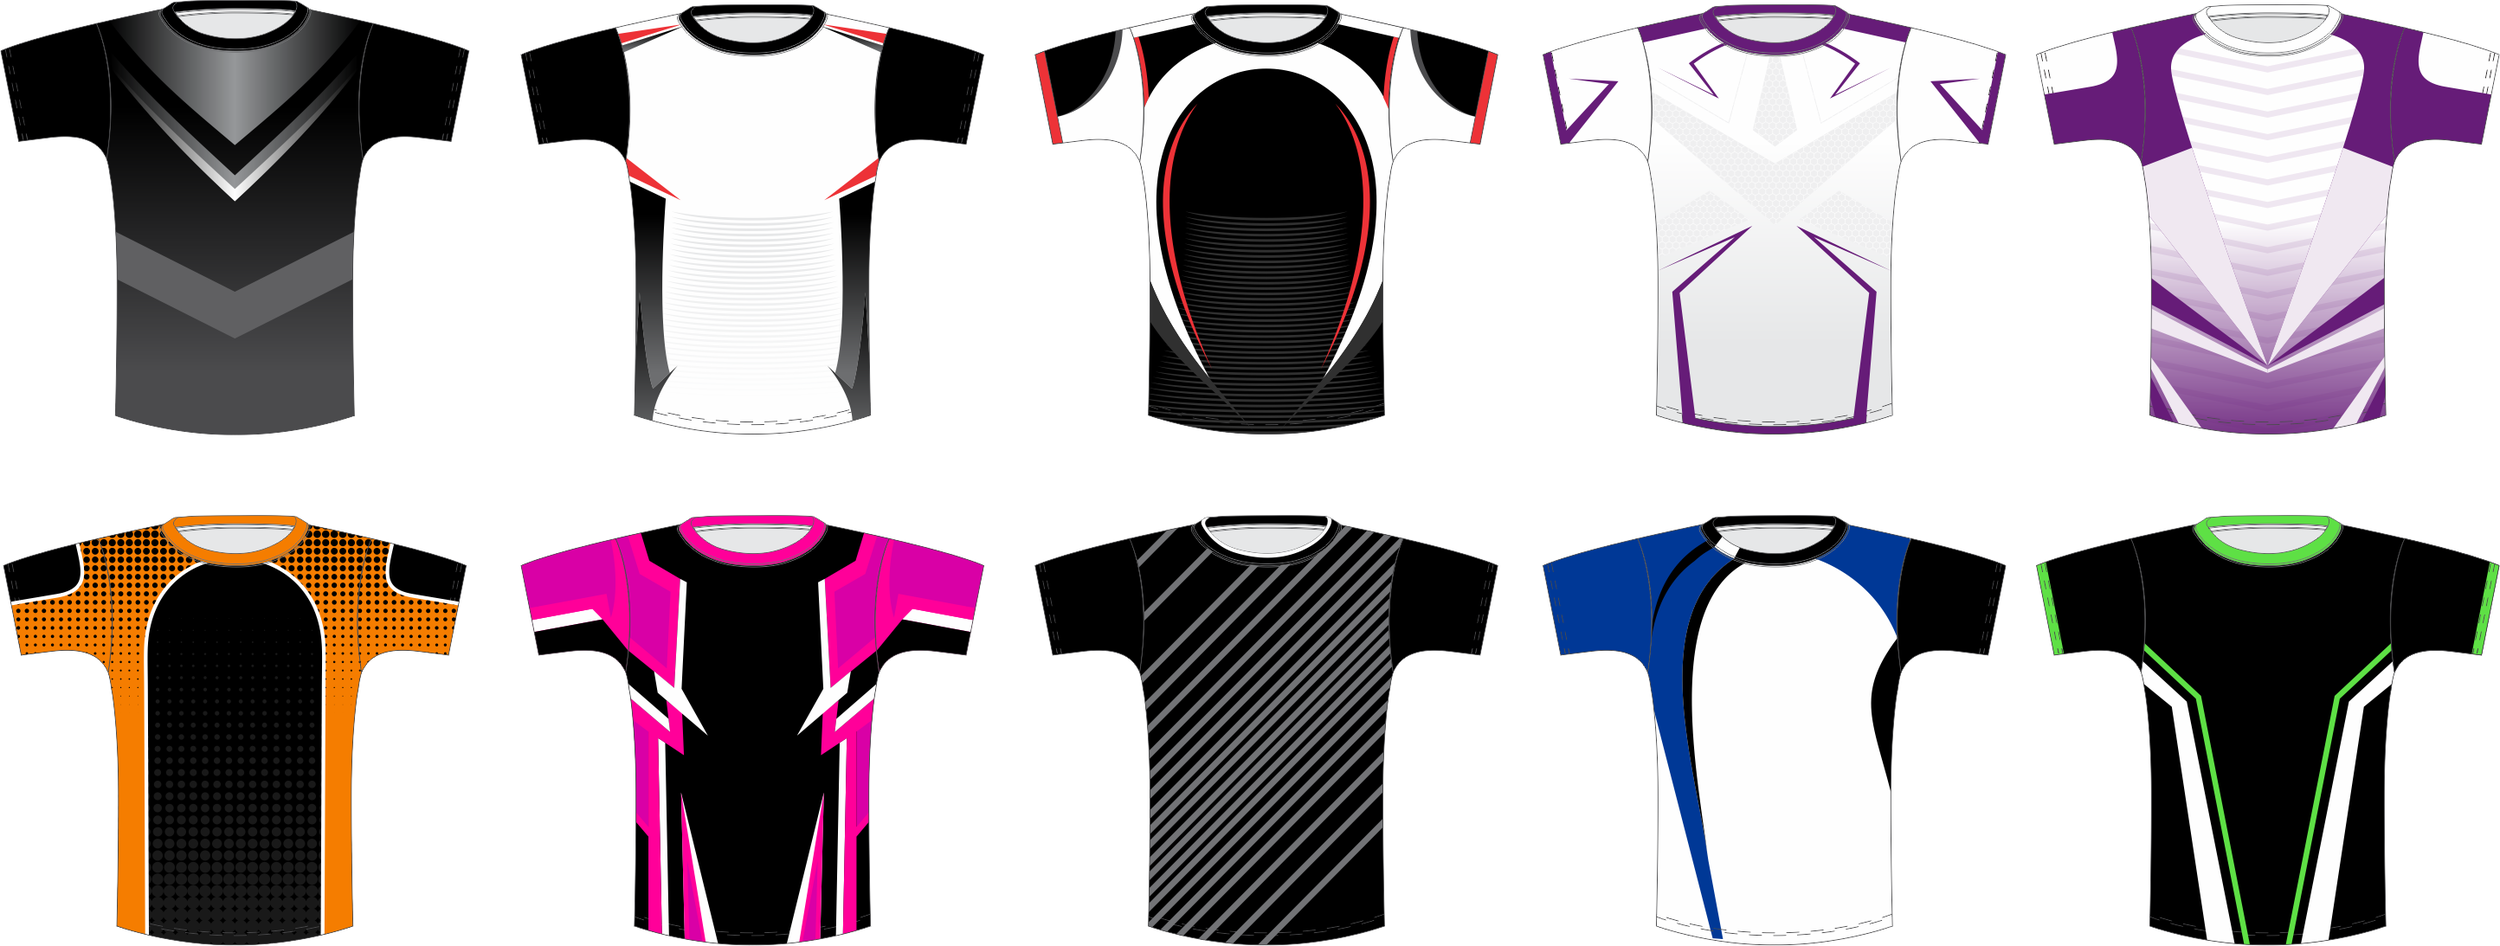 Wooter Apparel Website Designs E-Sports - Sublimated E-Sports Garments - 2017 - Featured.png